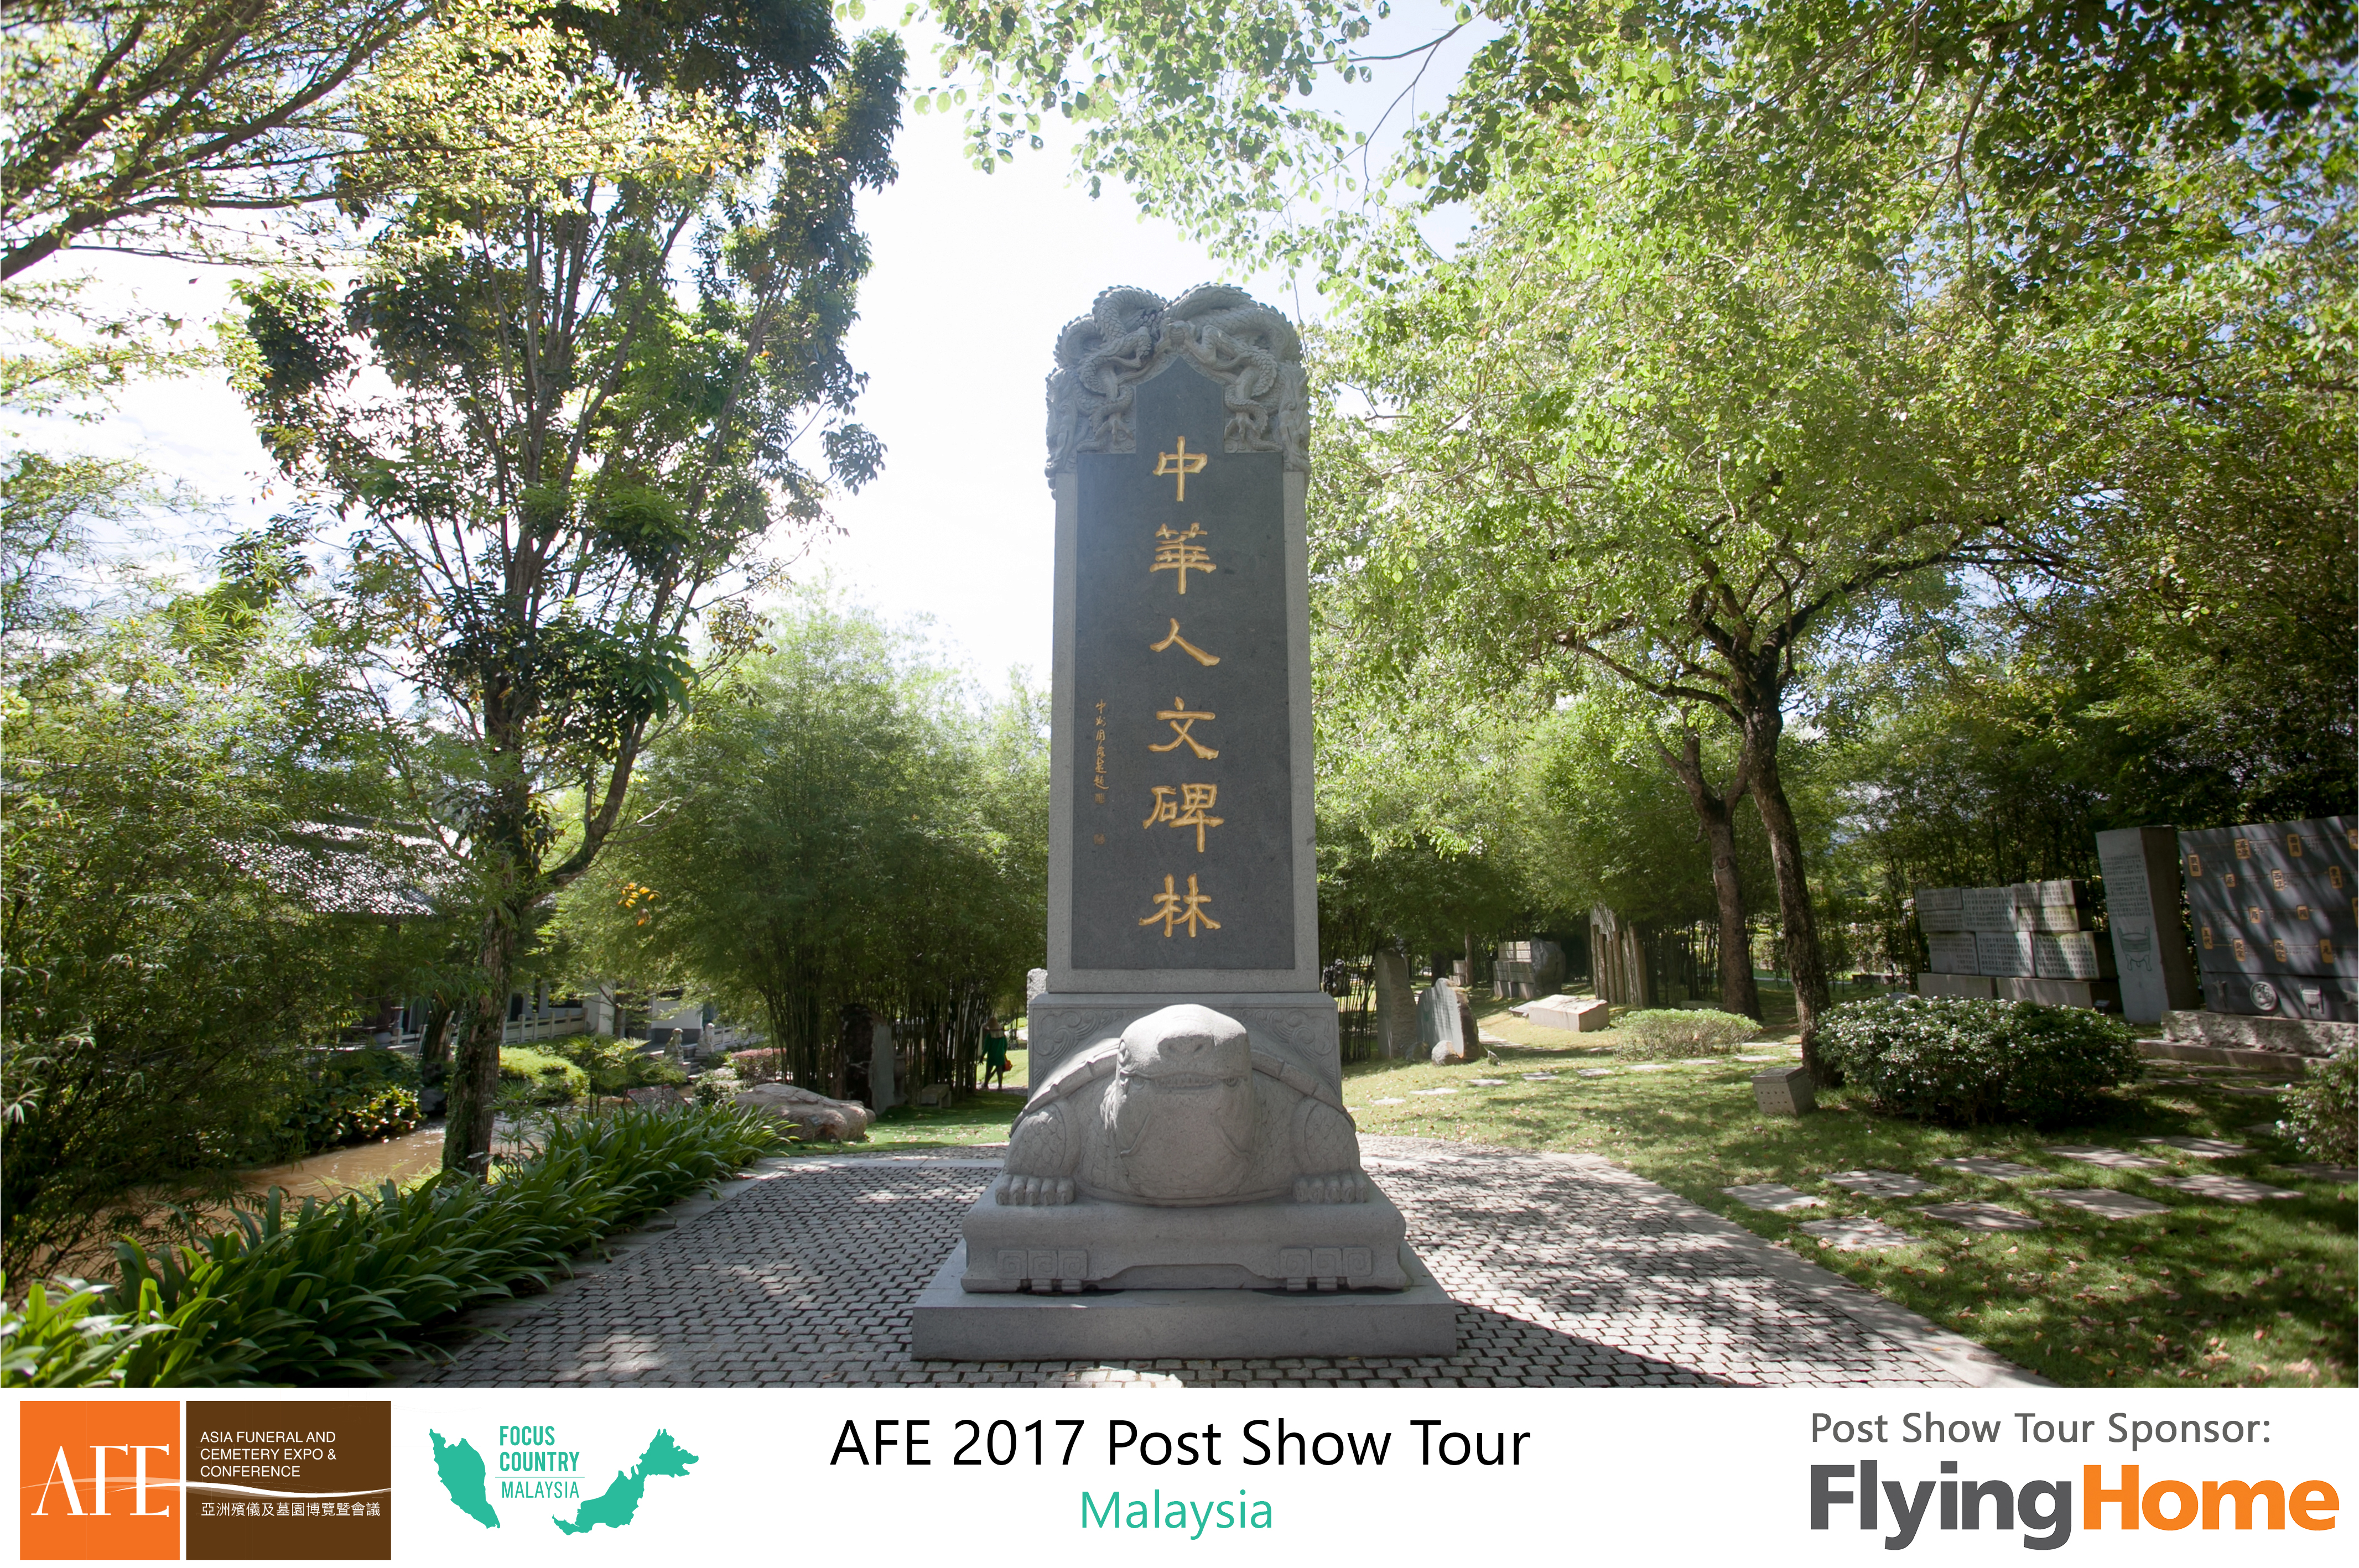 AFE Post Show Tour 2017 Day 2 - 47